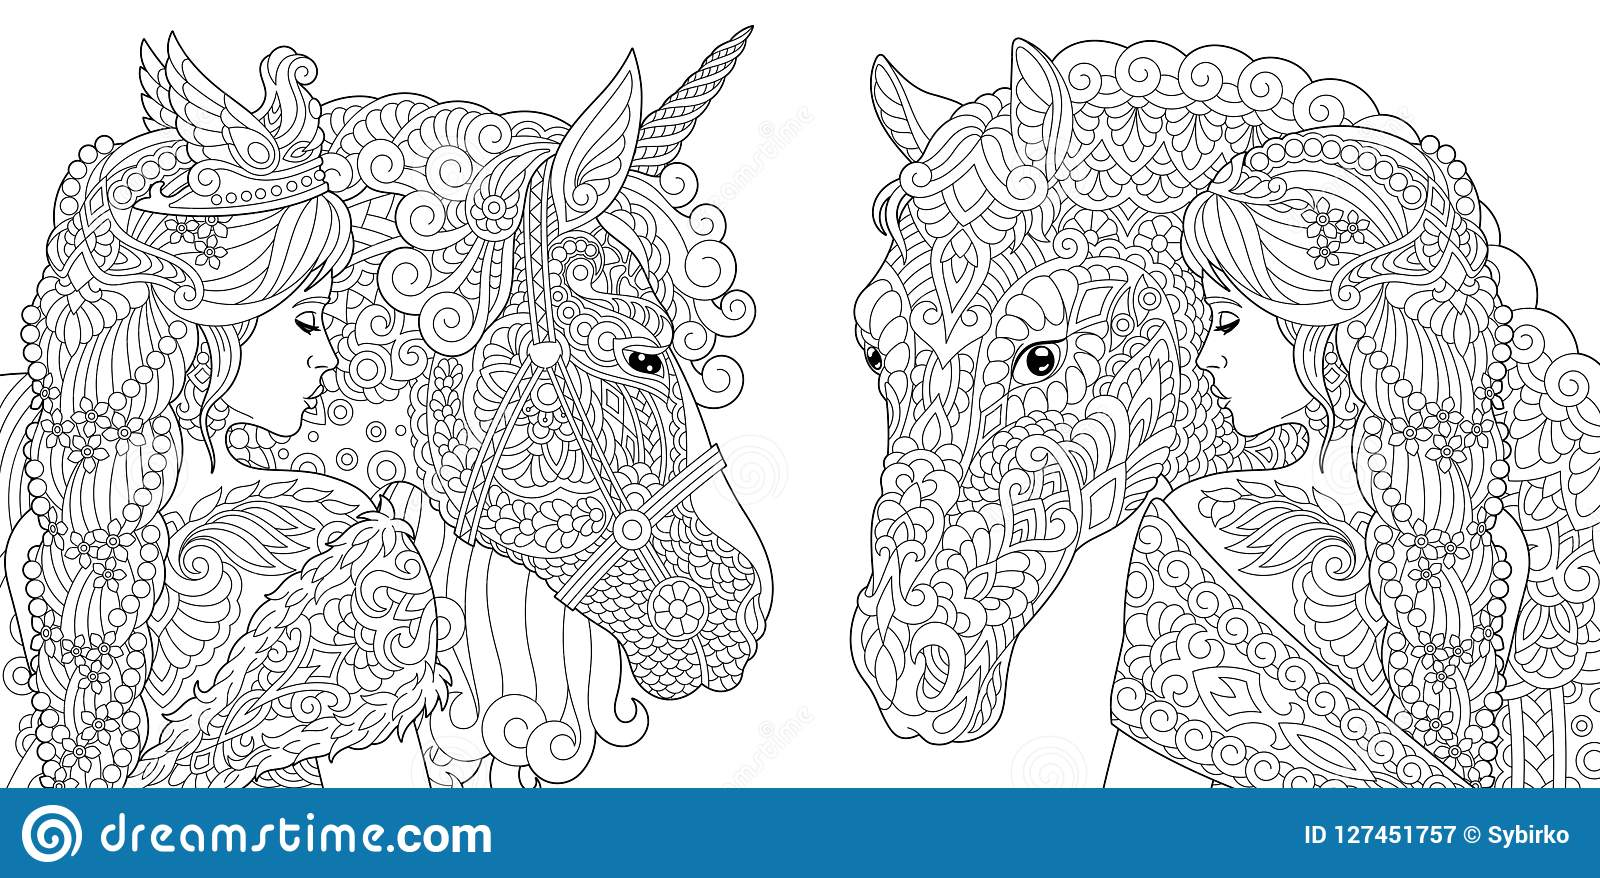 Fantasy Coloring Pages stock vector. Illustration of elegant ...